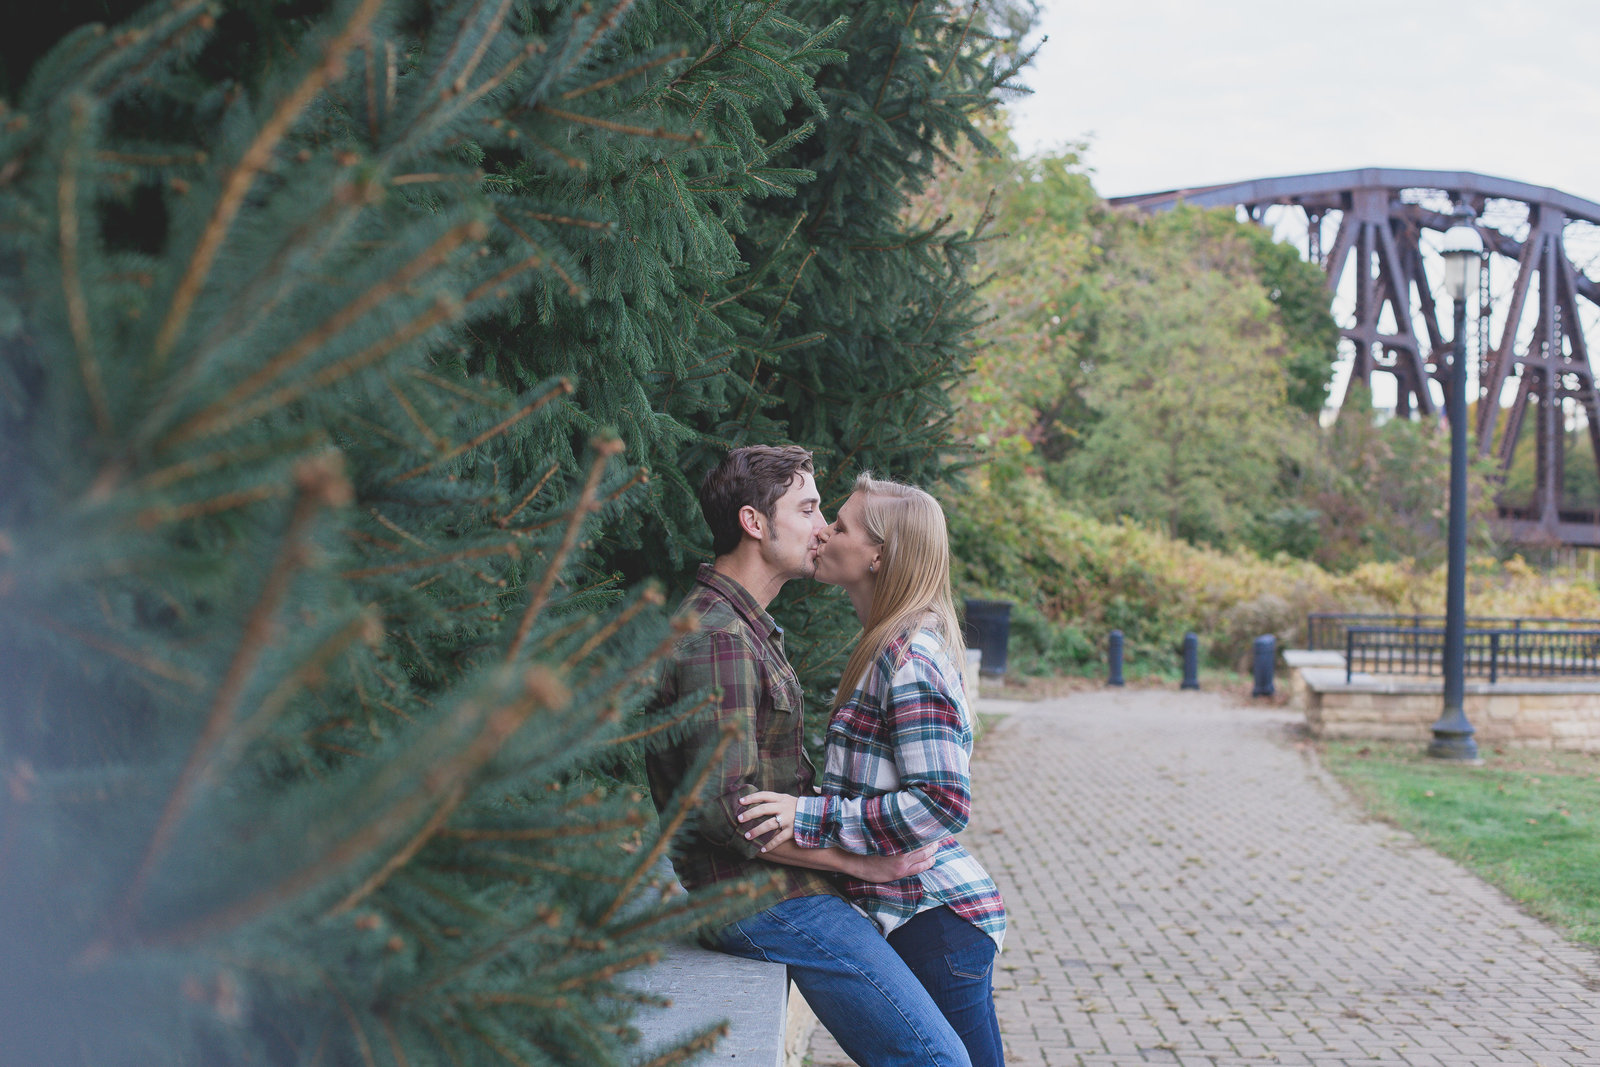 engaged_couple_kiss_among_pine_trees_in_park